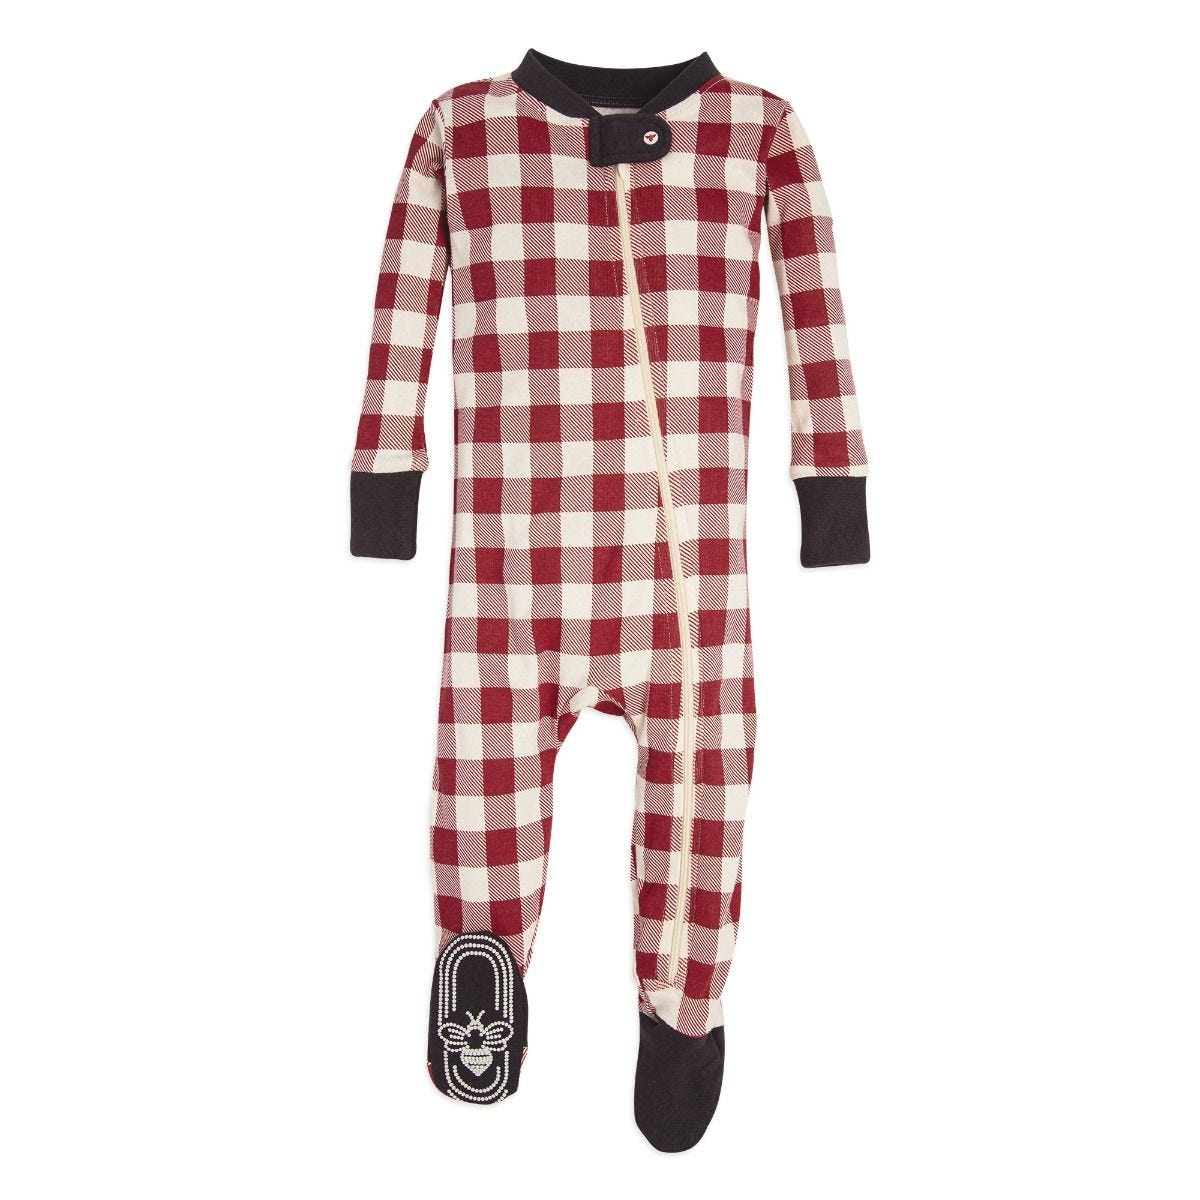 b7c5ae832 Buffalo Check Organic Baby Holiday Matching Zip Up Footed Pajamas